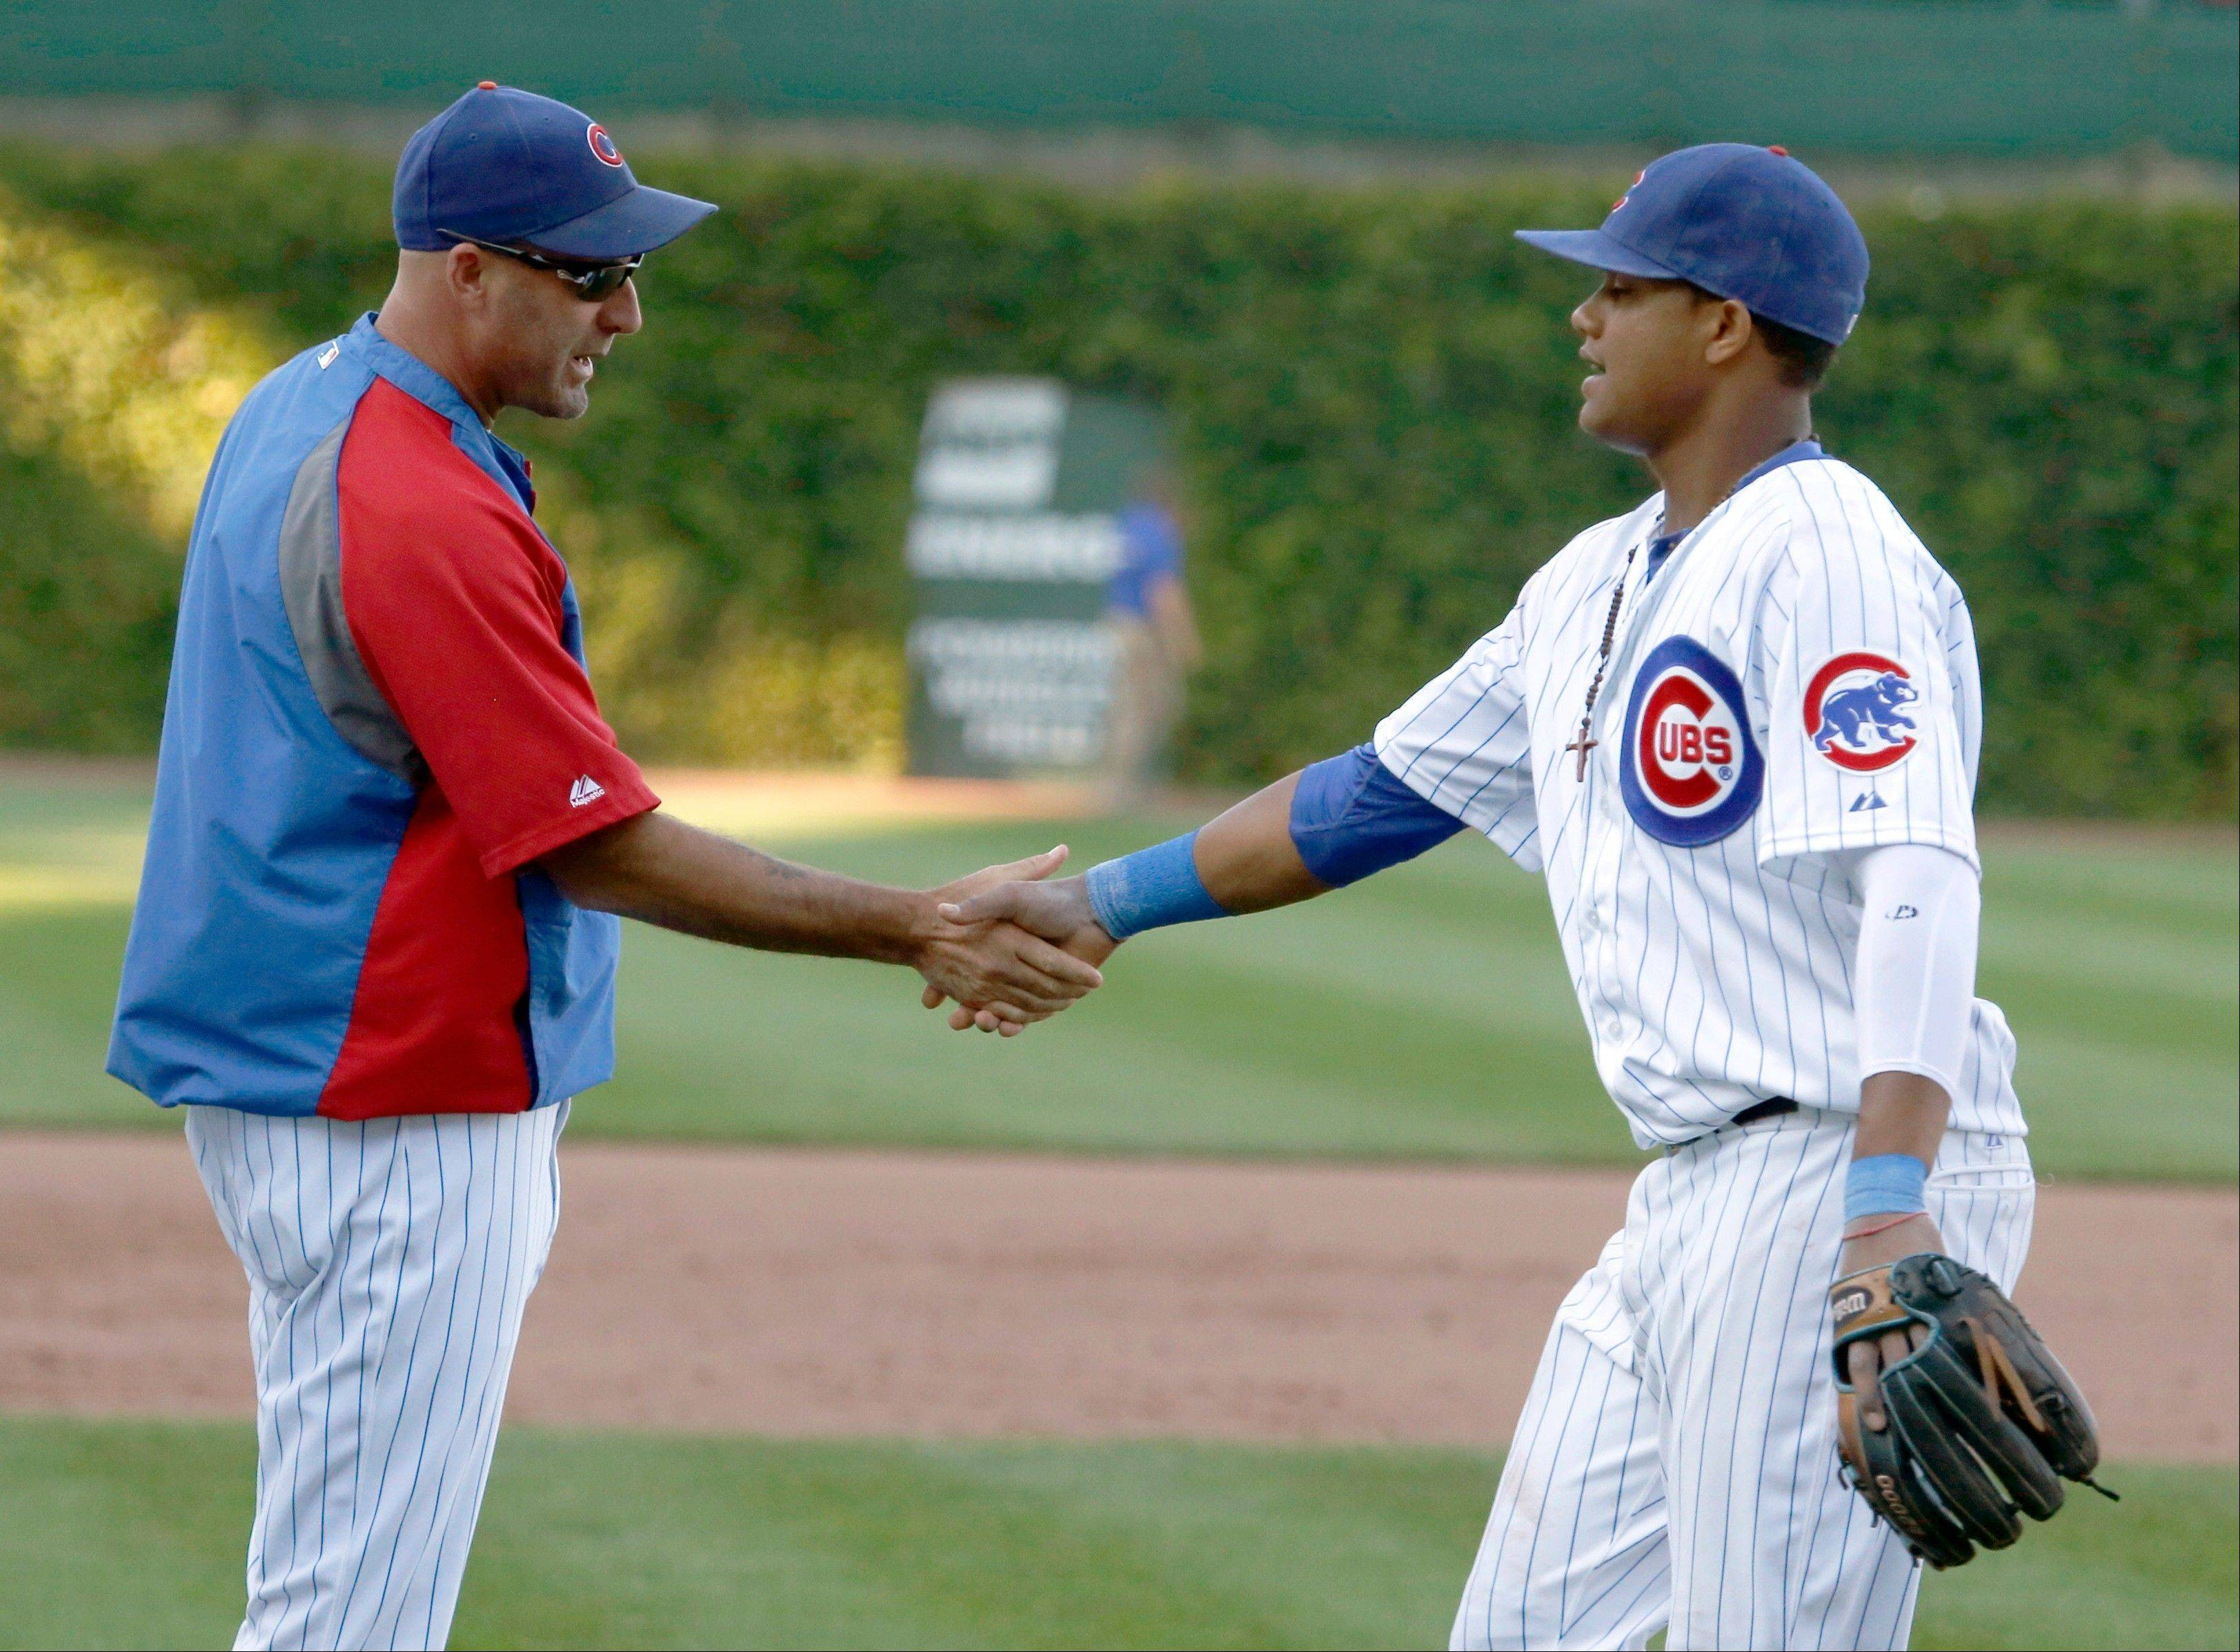 The Cubs' manager Dale Sveum greets shortstop Starlin Castro after the Cubs' 4-2 win over the Pittsburgh Pirates